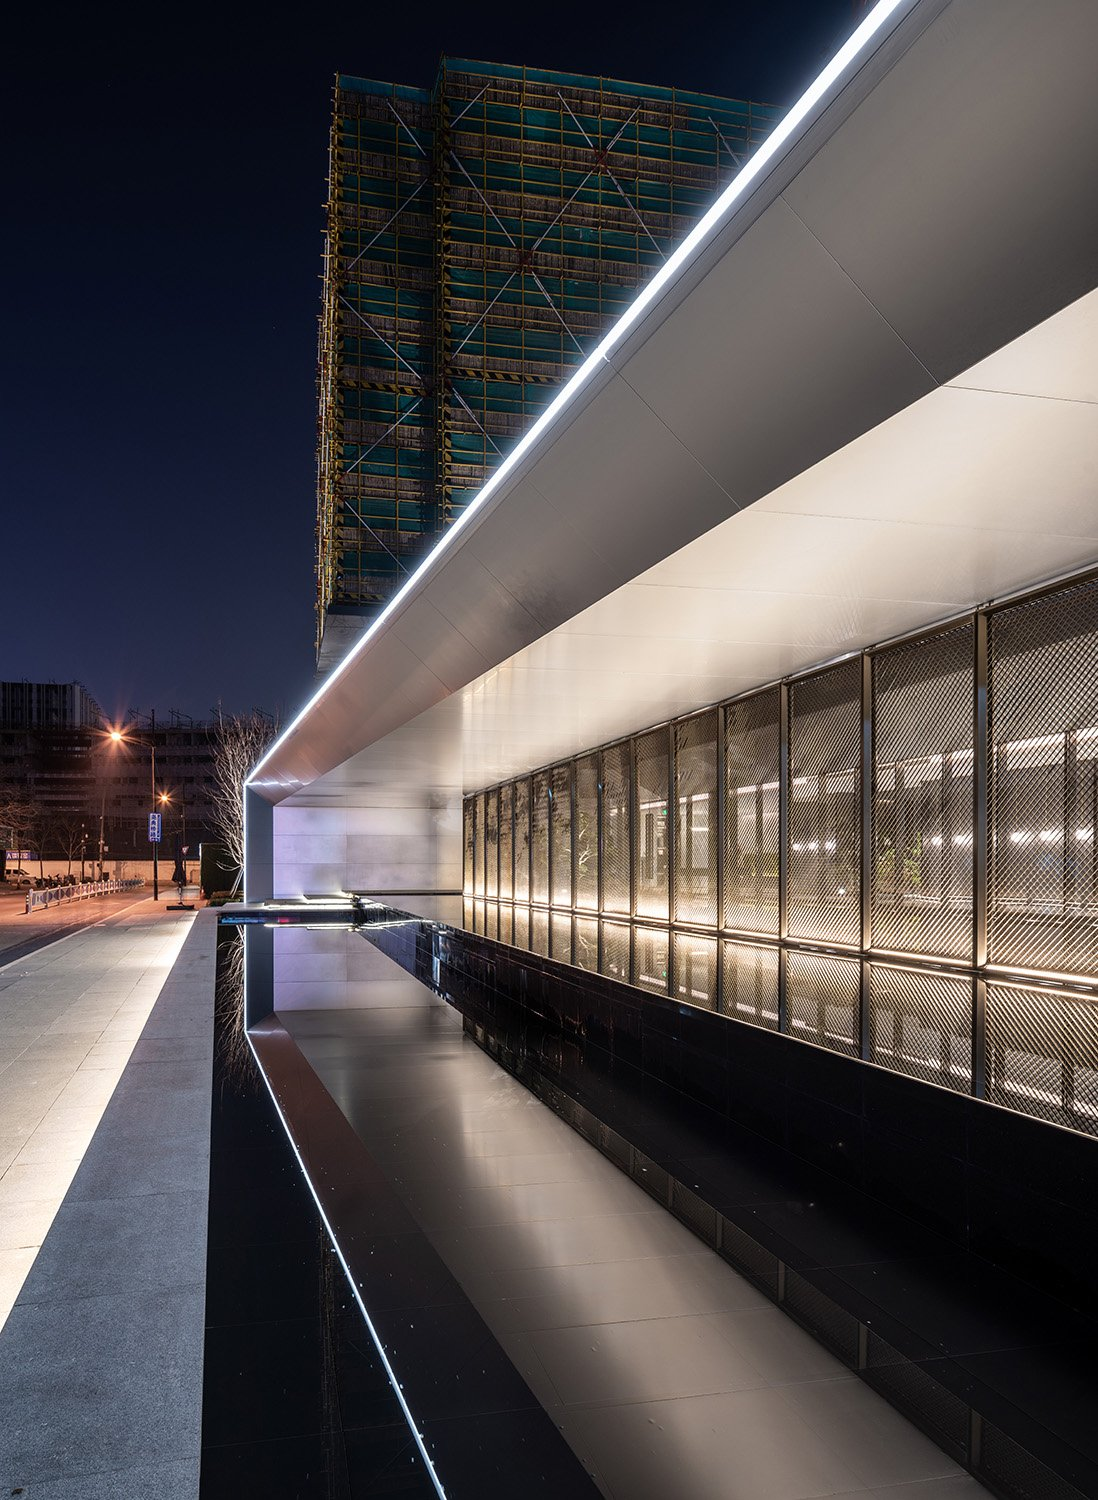 Over-scale cantilevered awning and water features Xi Chen